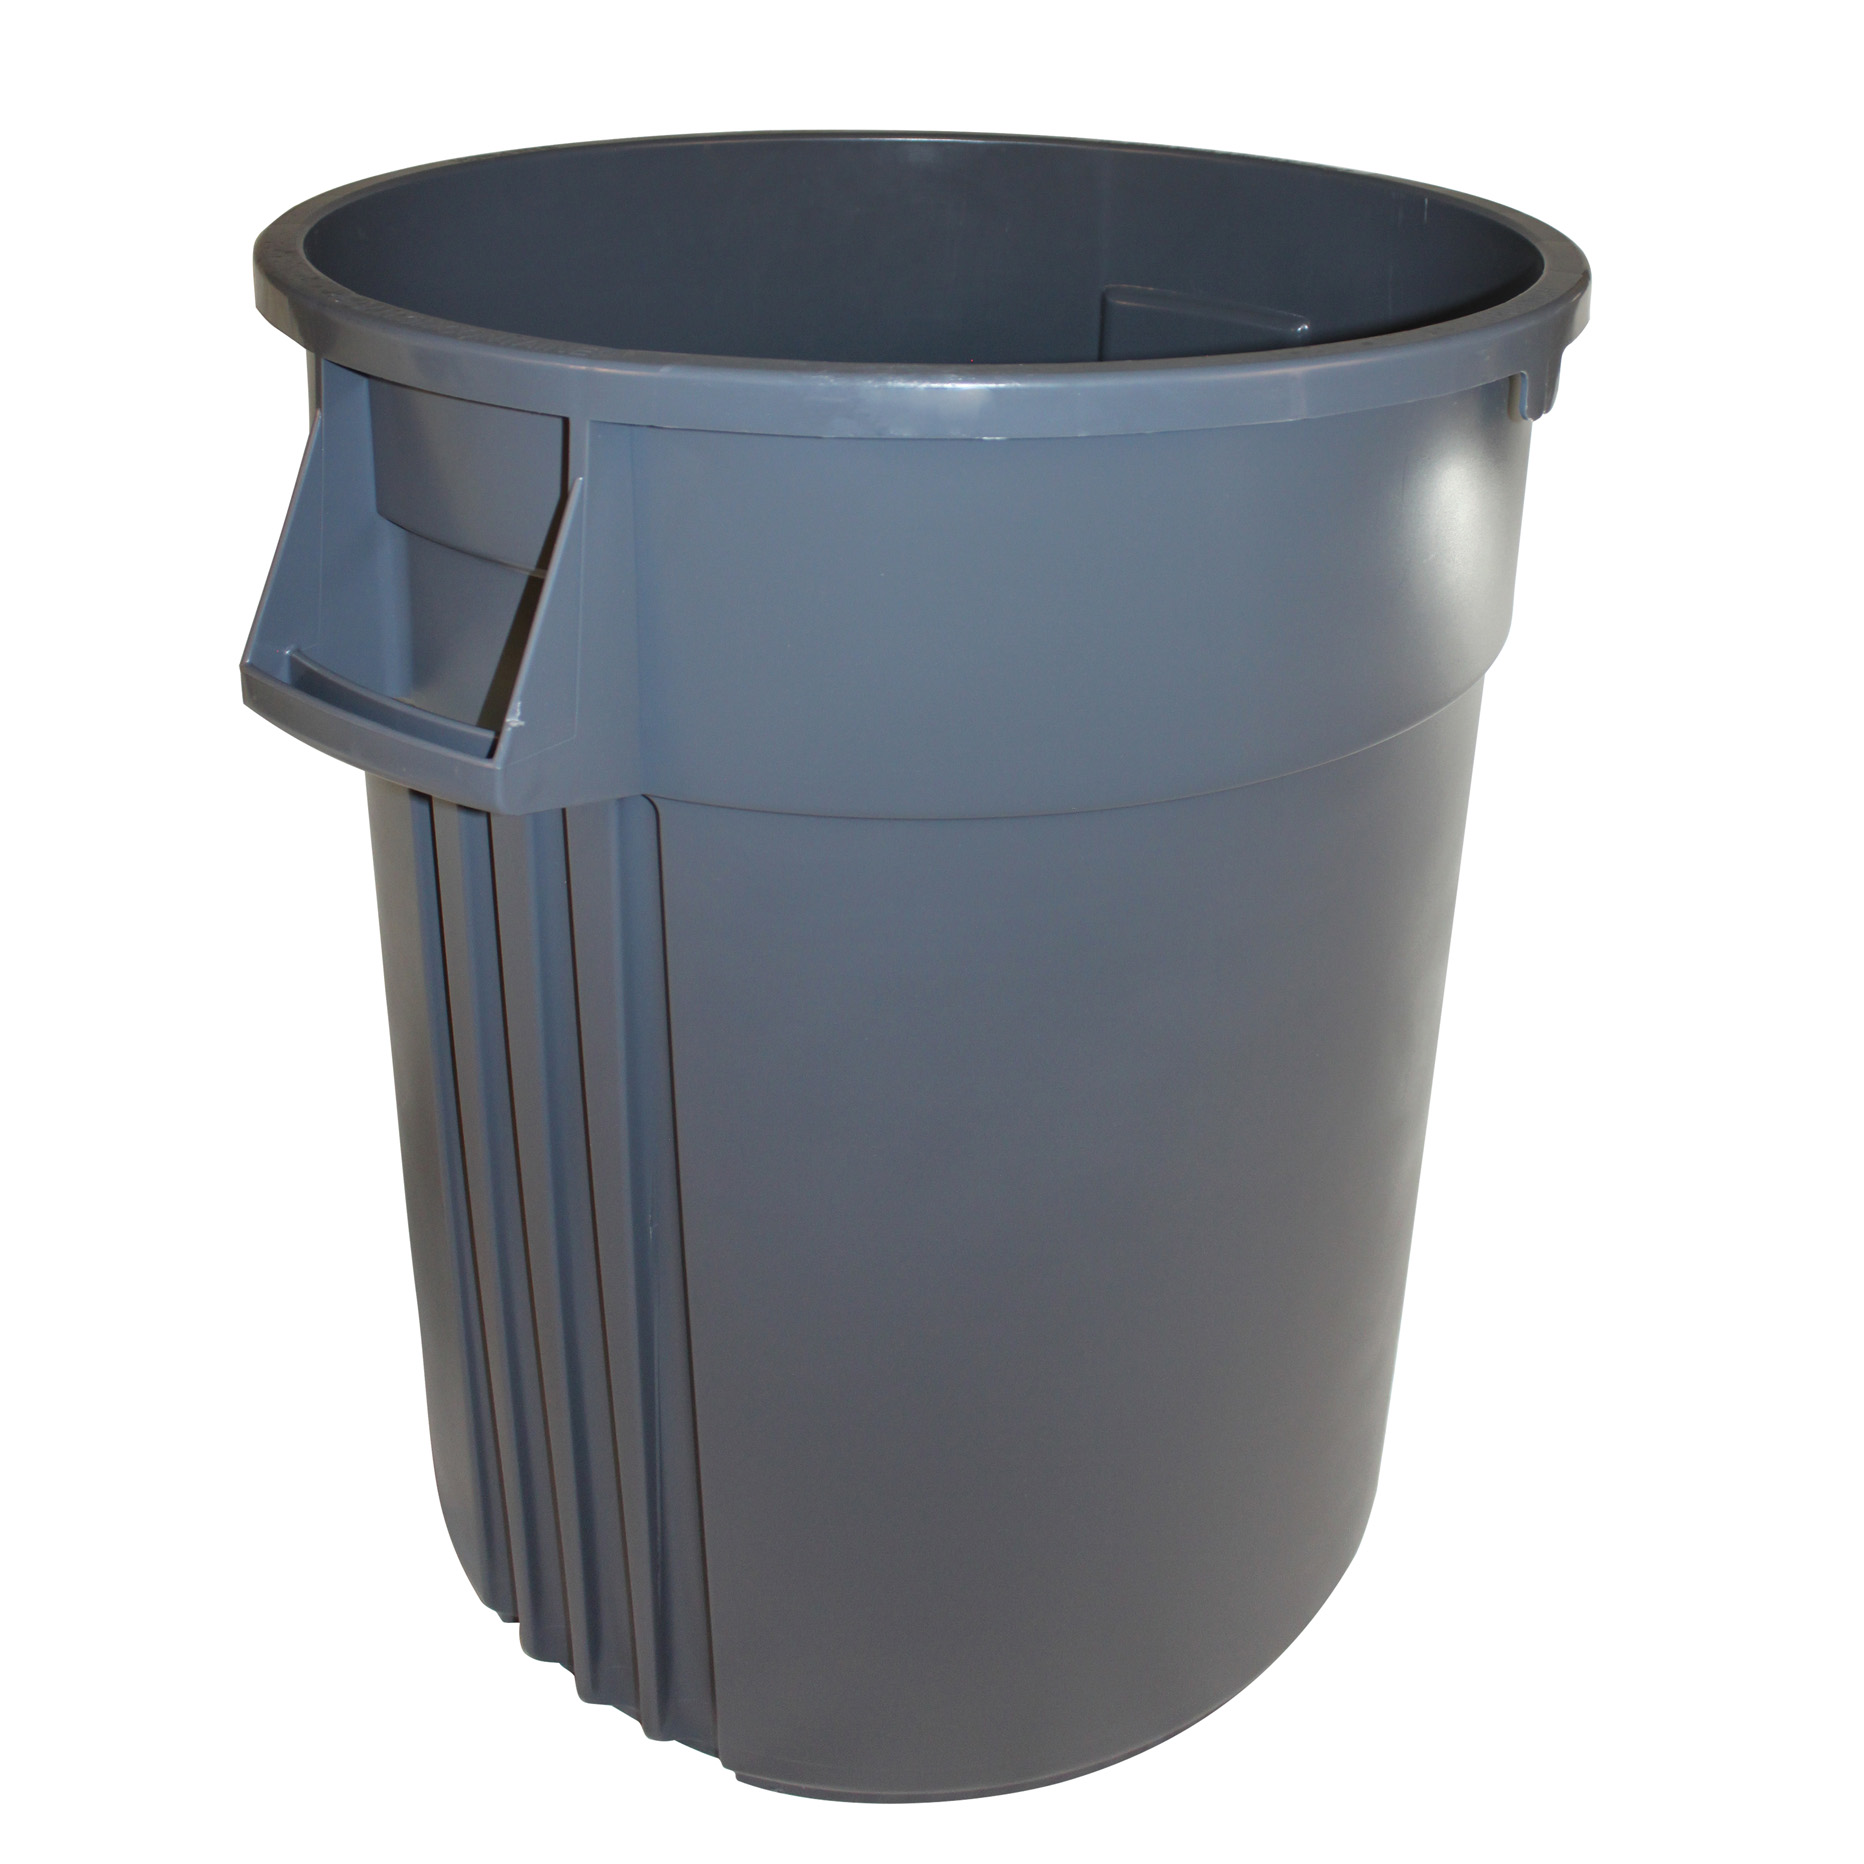 3700-0391 Impact Products 7744-3 trash can / container, commercial